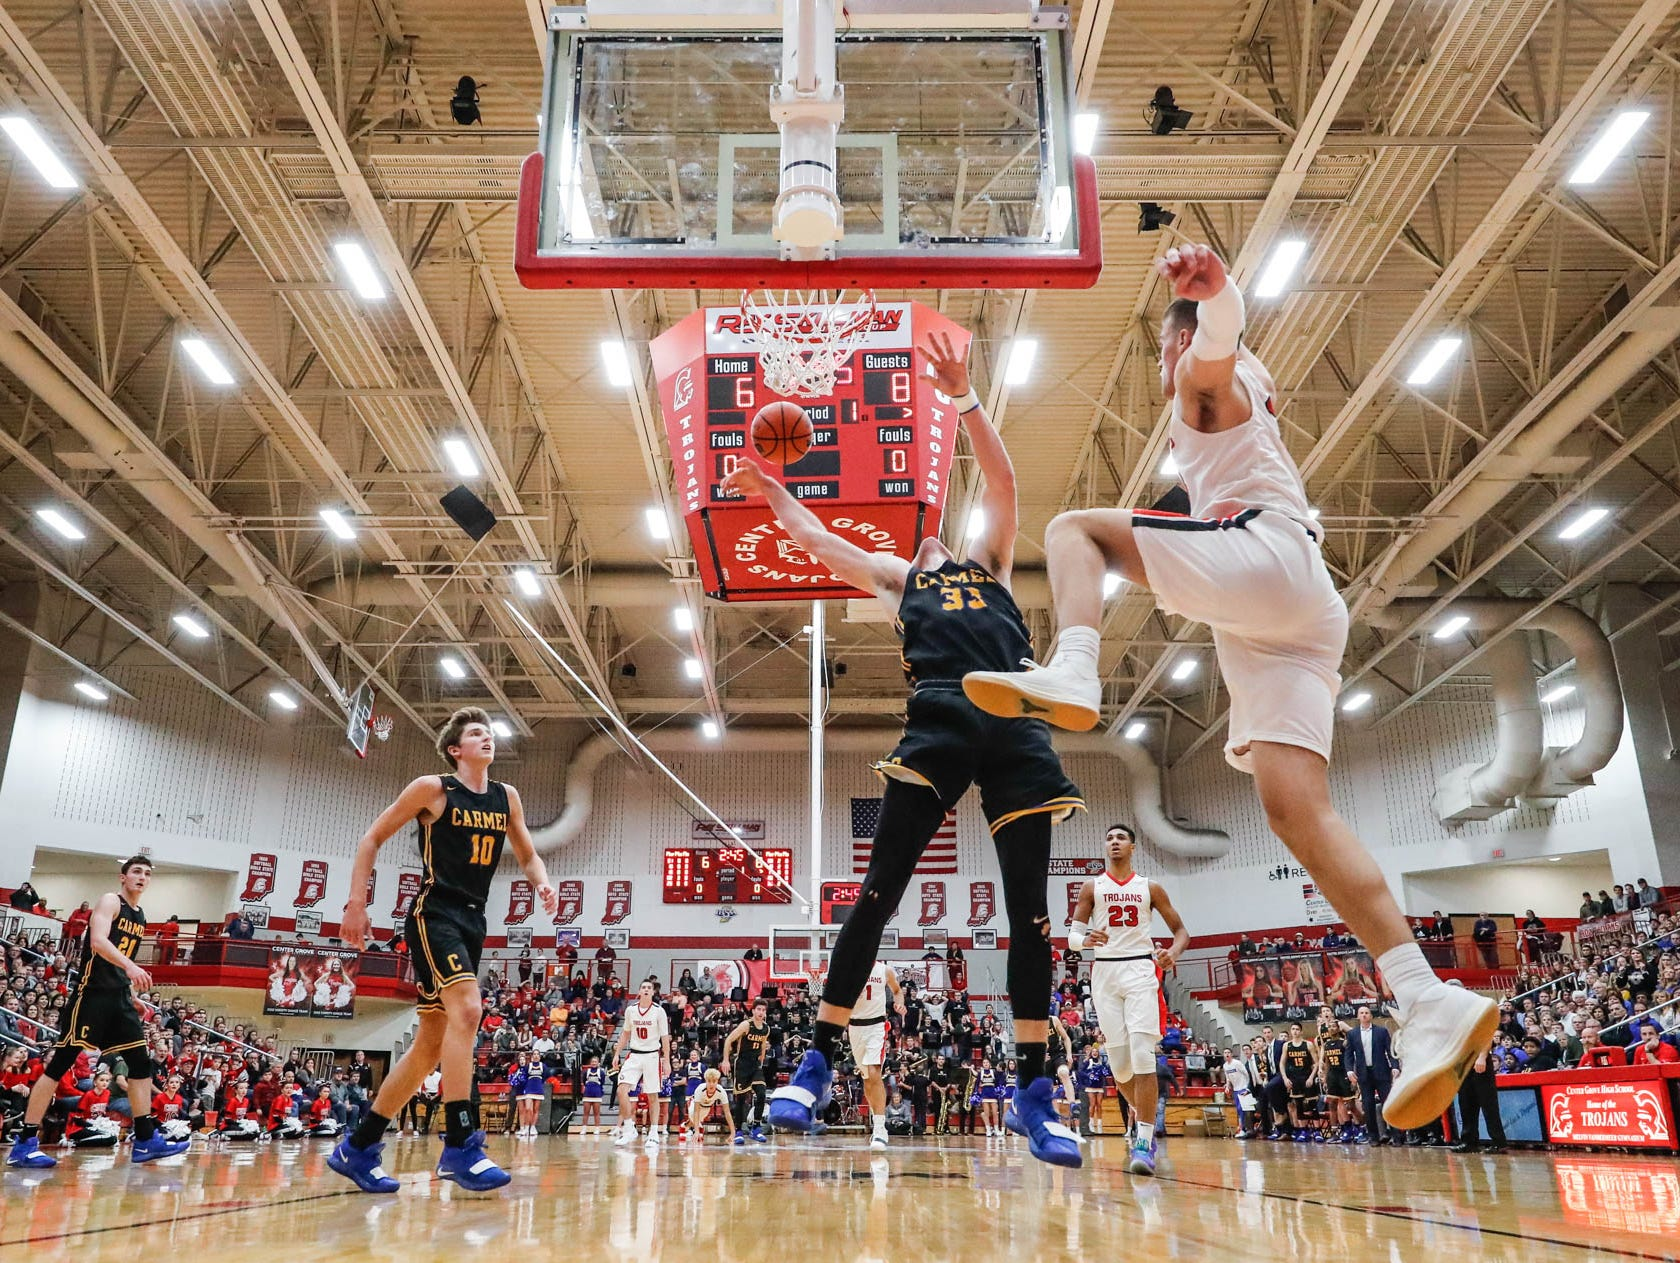 Center Grove High School's forward Justin DeGraaf (13) attempts to block a shot by Carmel High School's John Michael Mulloy (33), during a game between Center Grove High School and Carmel High School, held at Center Grove on on Friday, Jan. 4, 2019.